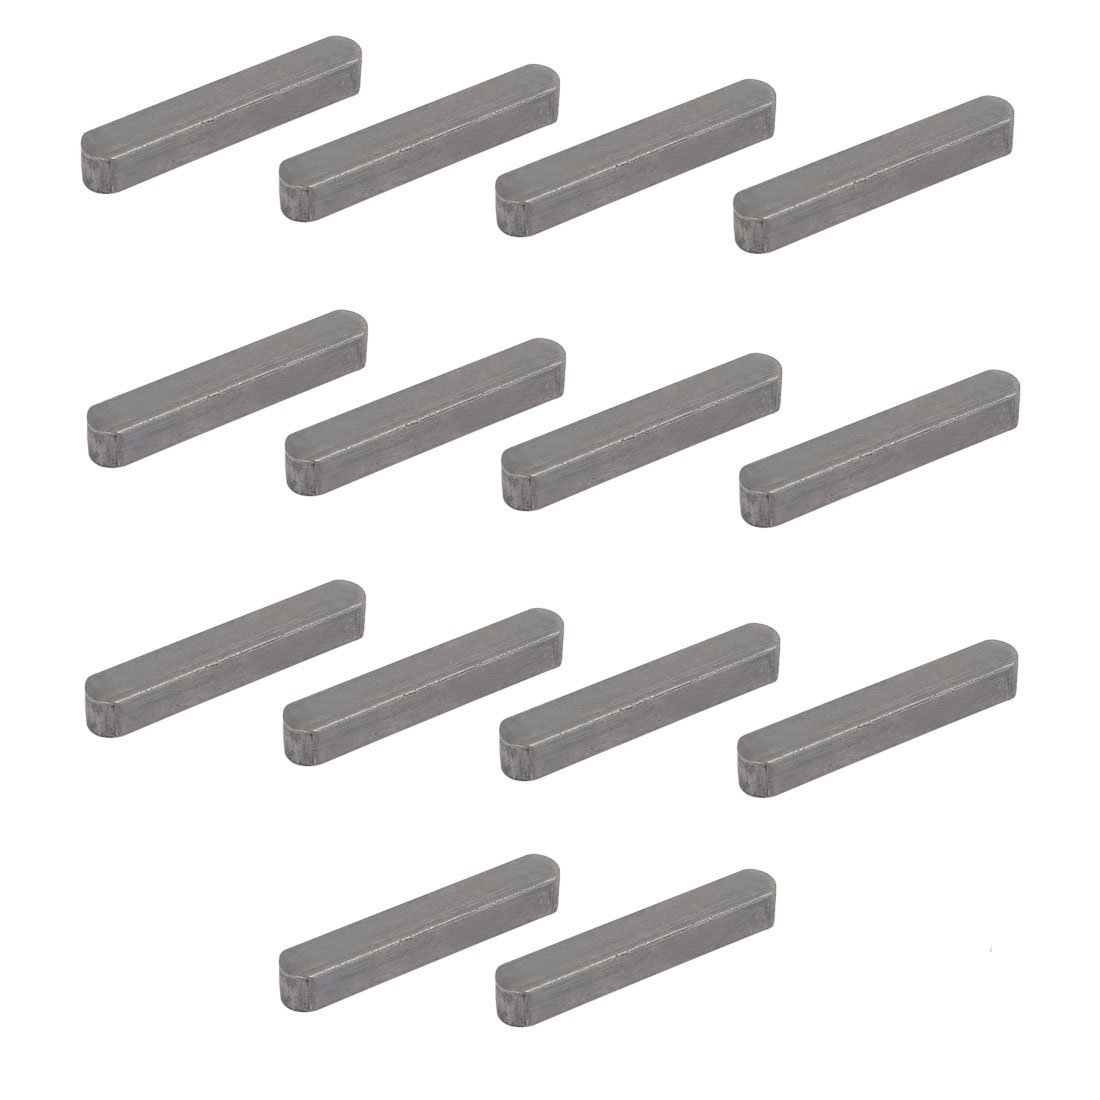 uxcell 50mmx8mmx7mm Carbon Steel Key Stock to Lock Pulleys 14pcs